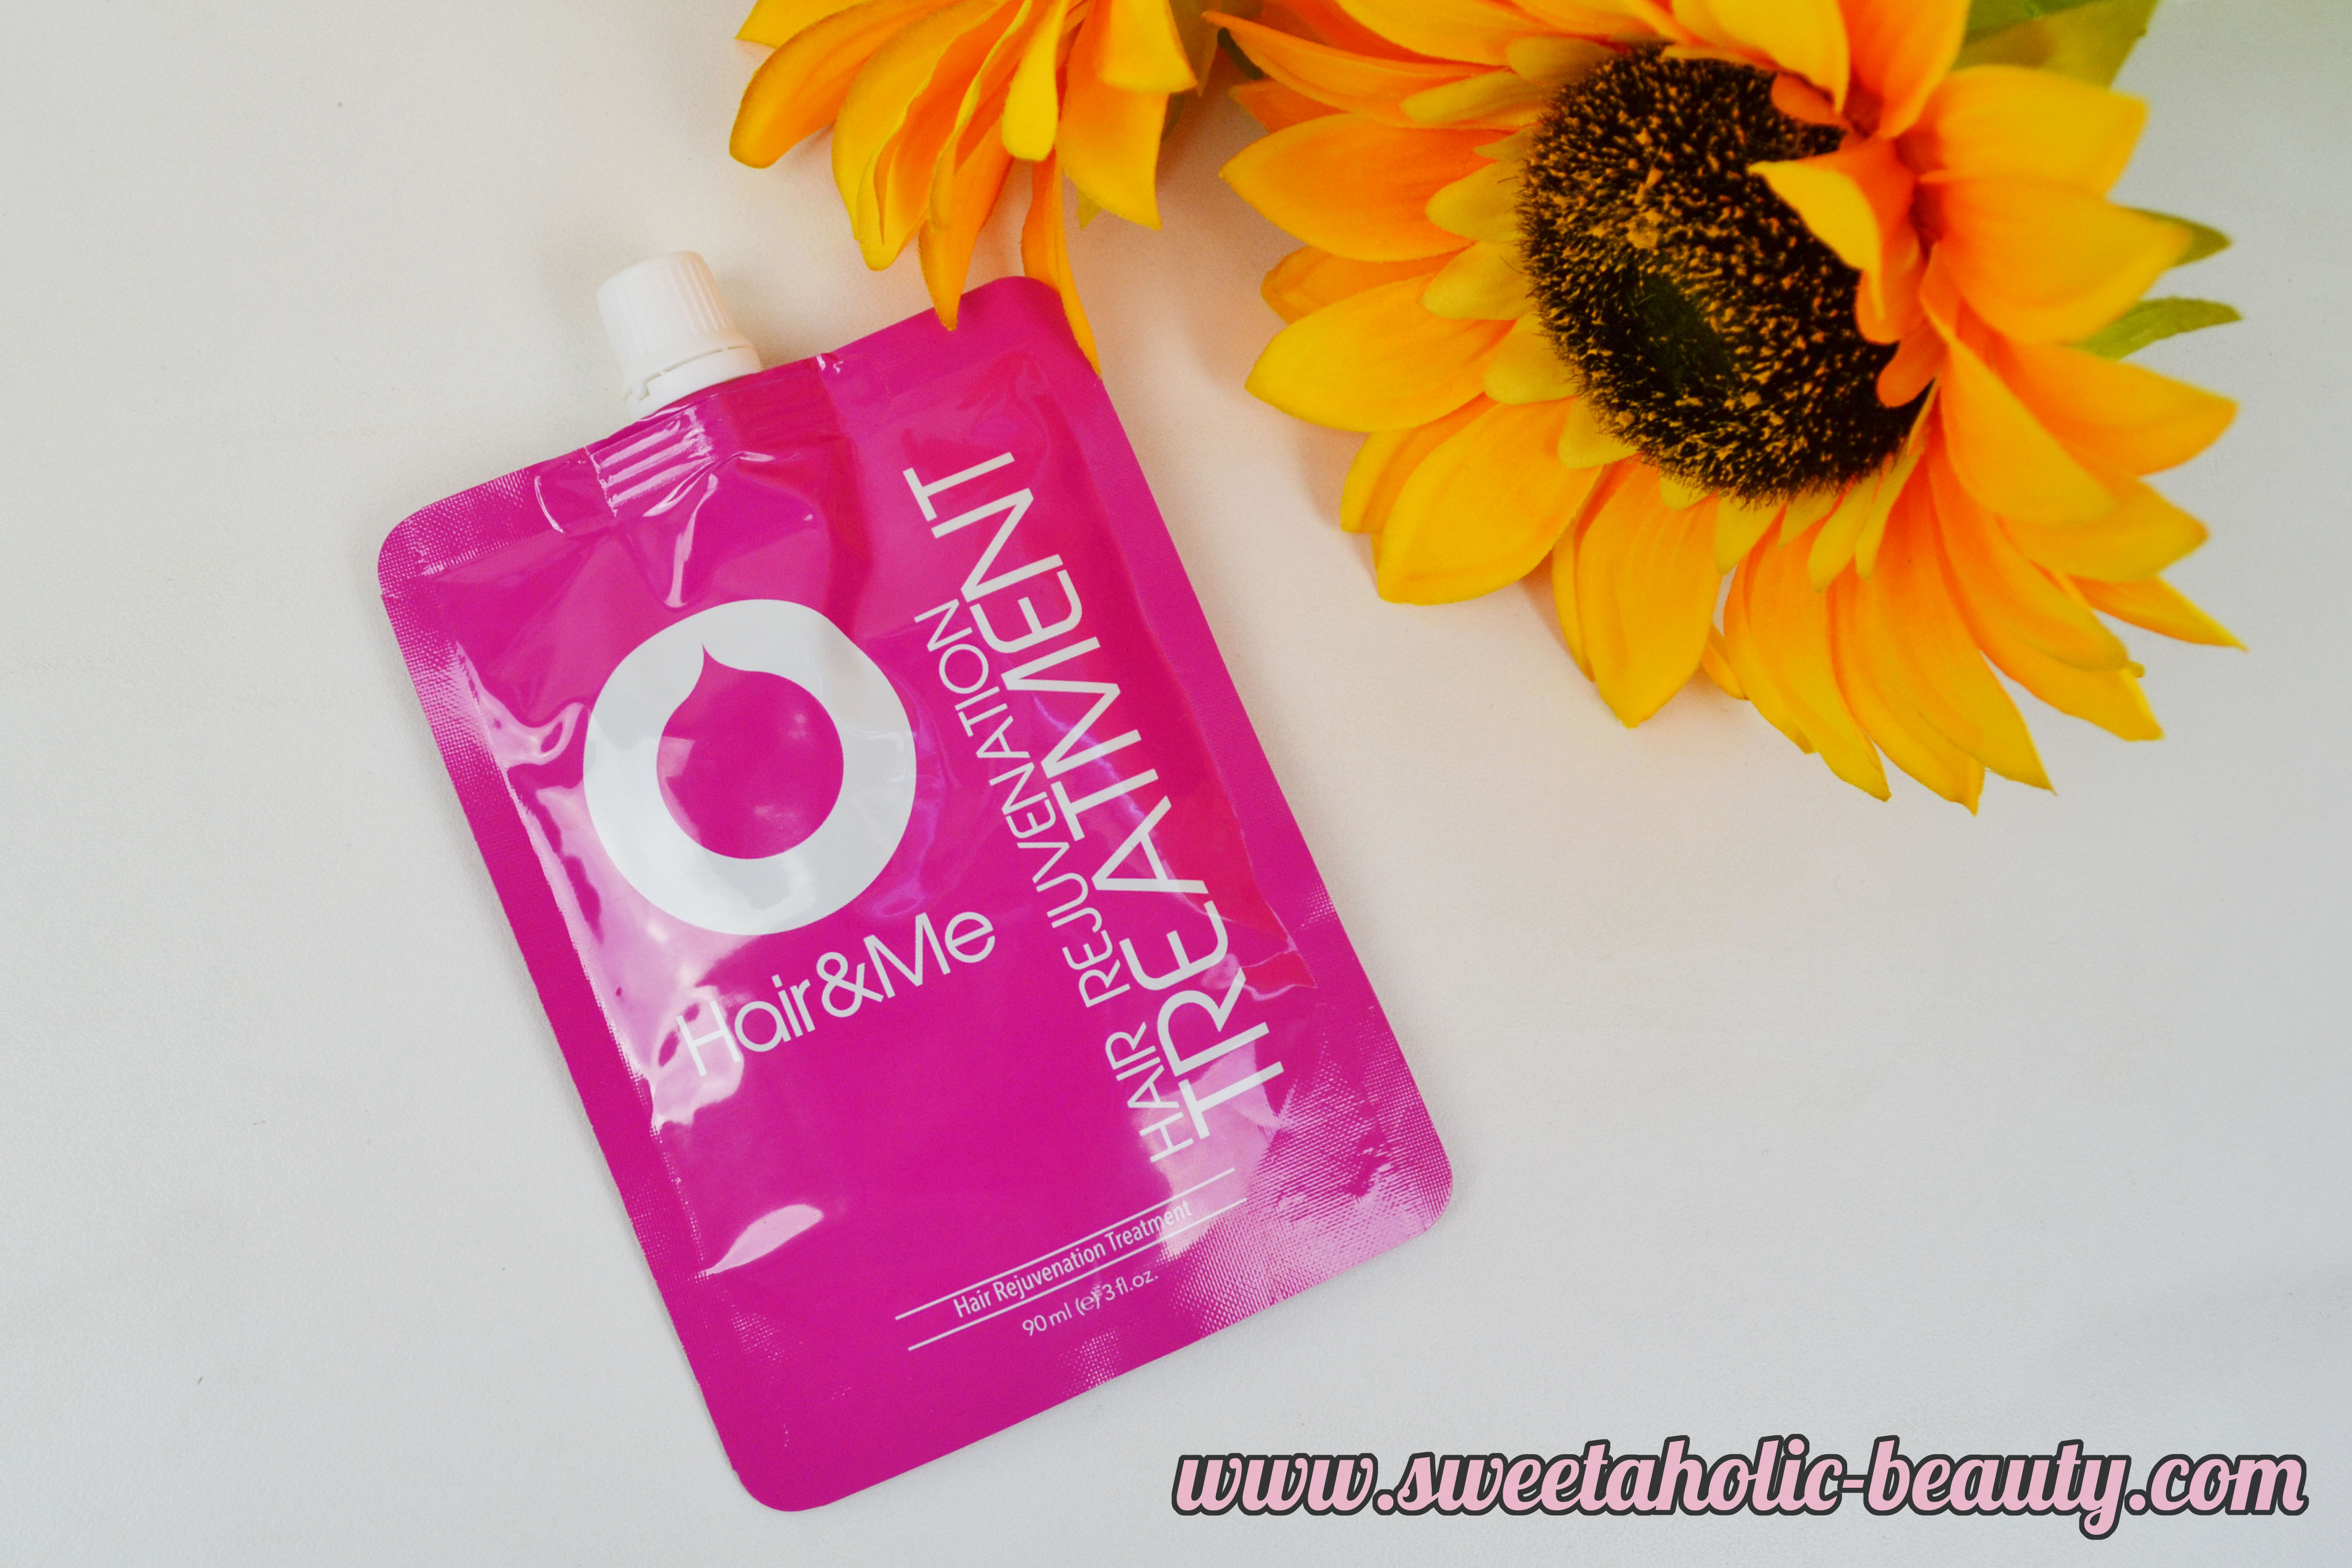 Hair & Me Hair Rejuvenation Treatment Review - Sweetaholic Beauty